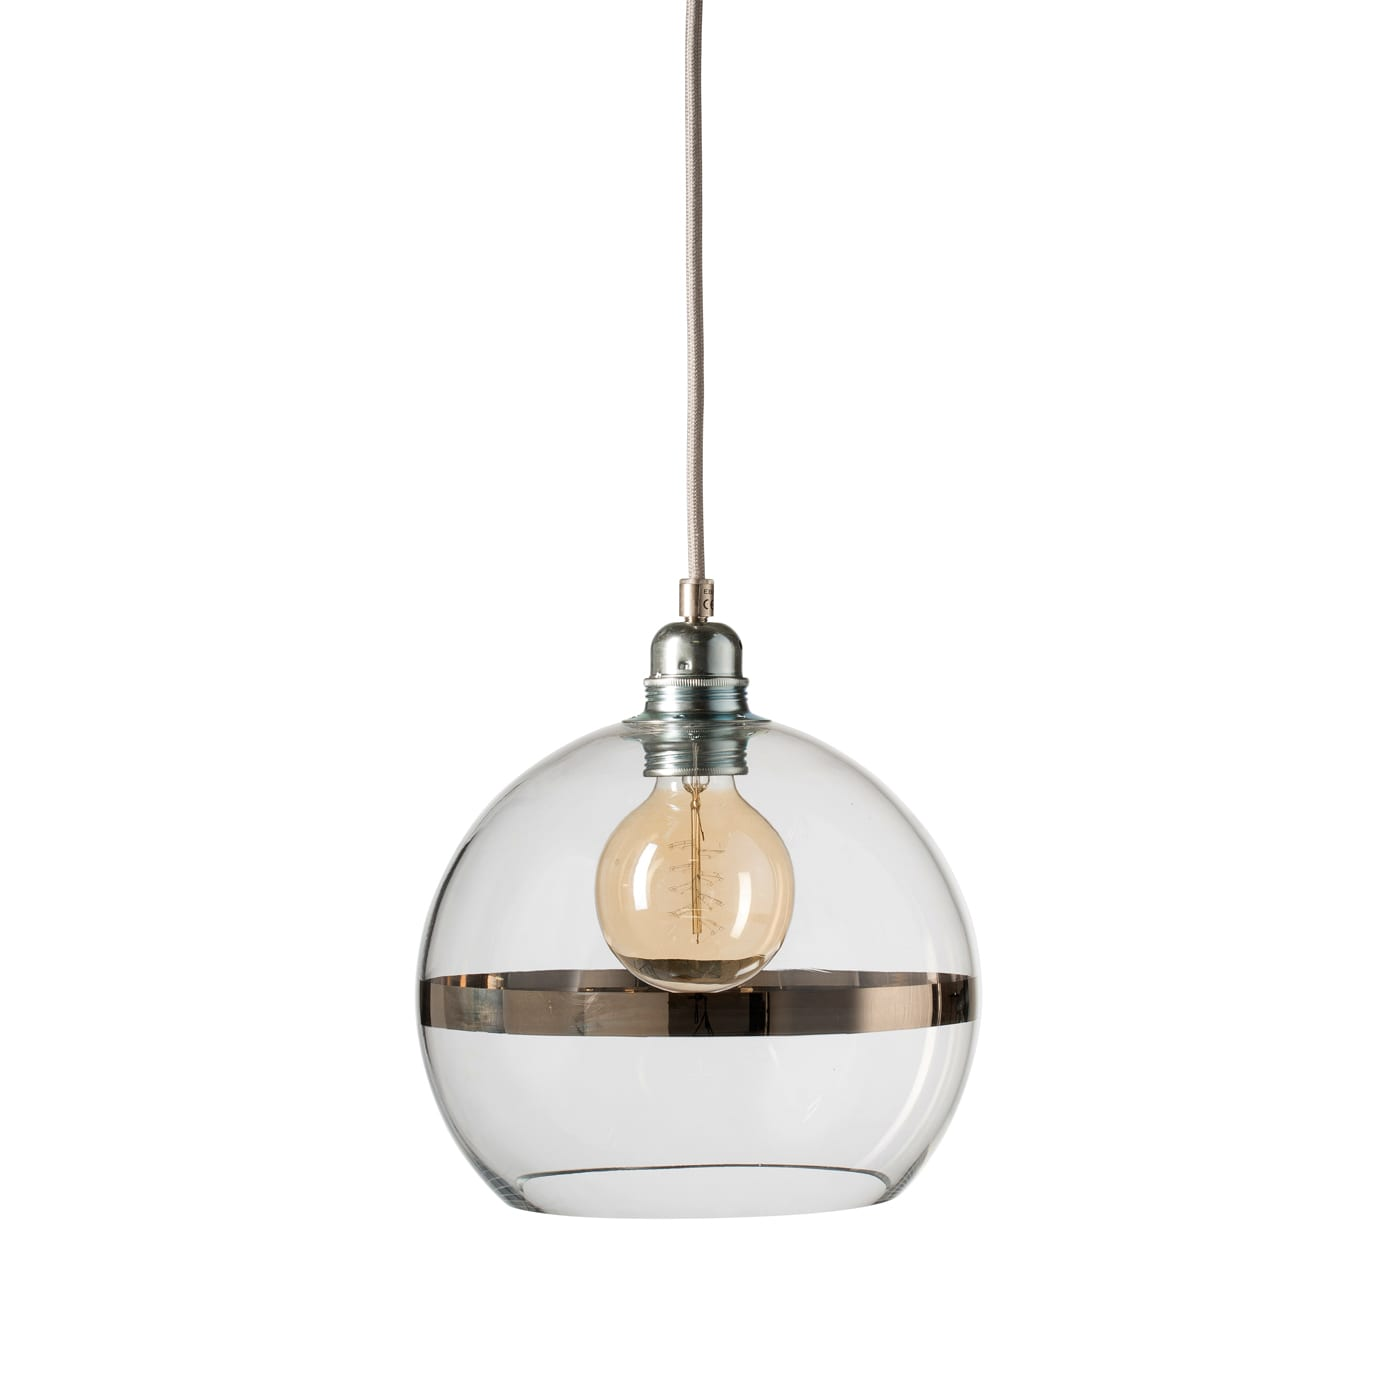 Rowan pendant lamp, platinum stripe on clear, 22cm